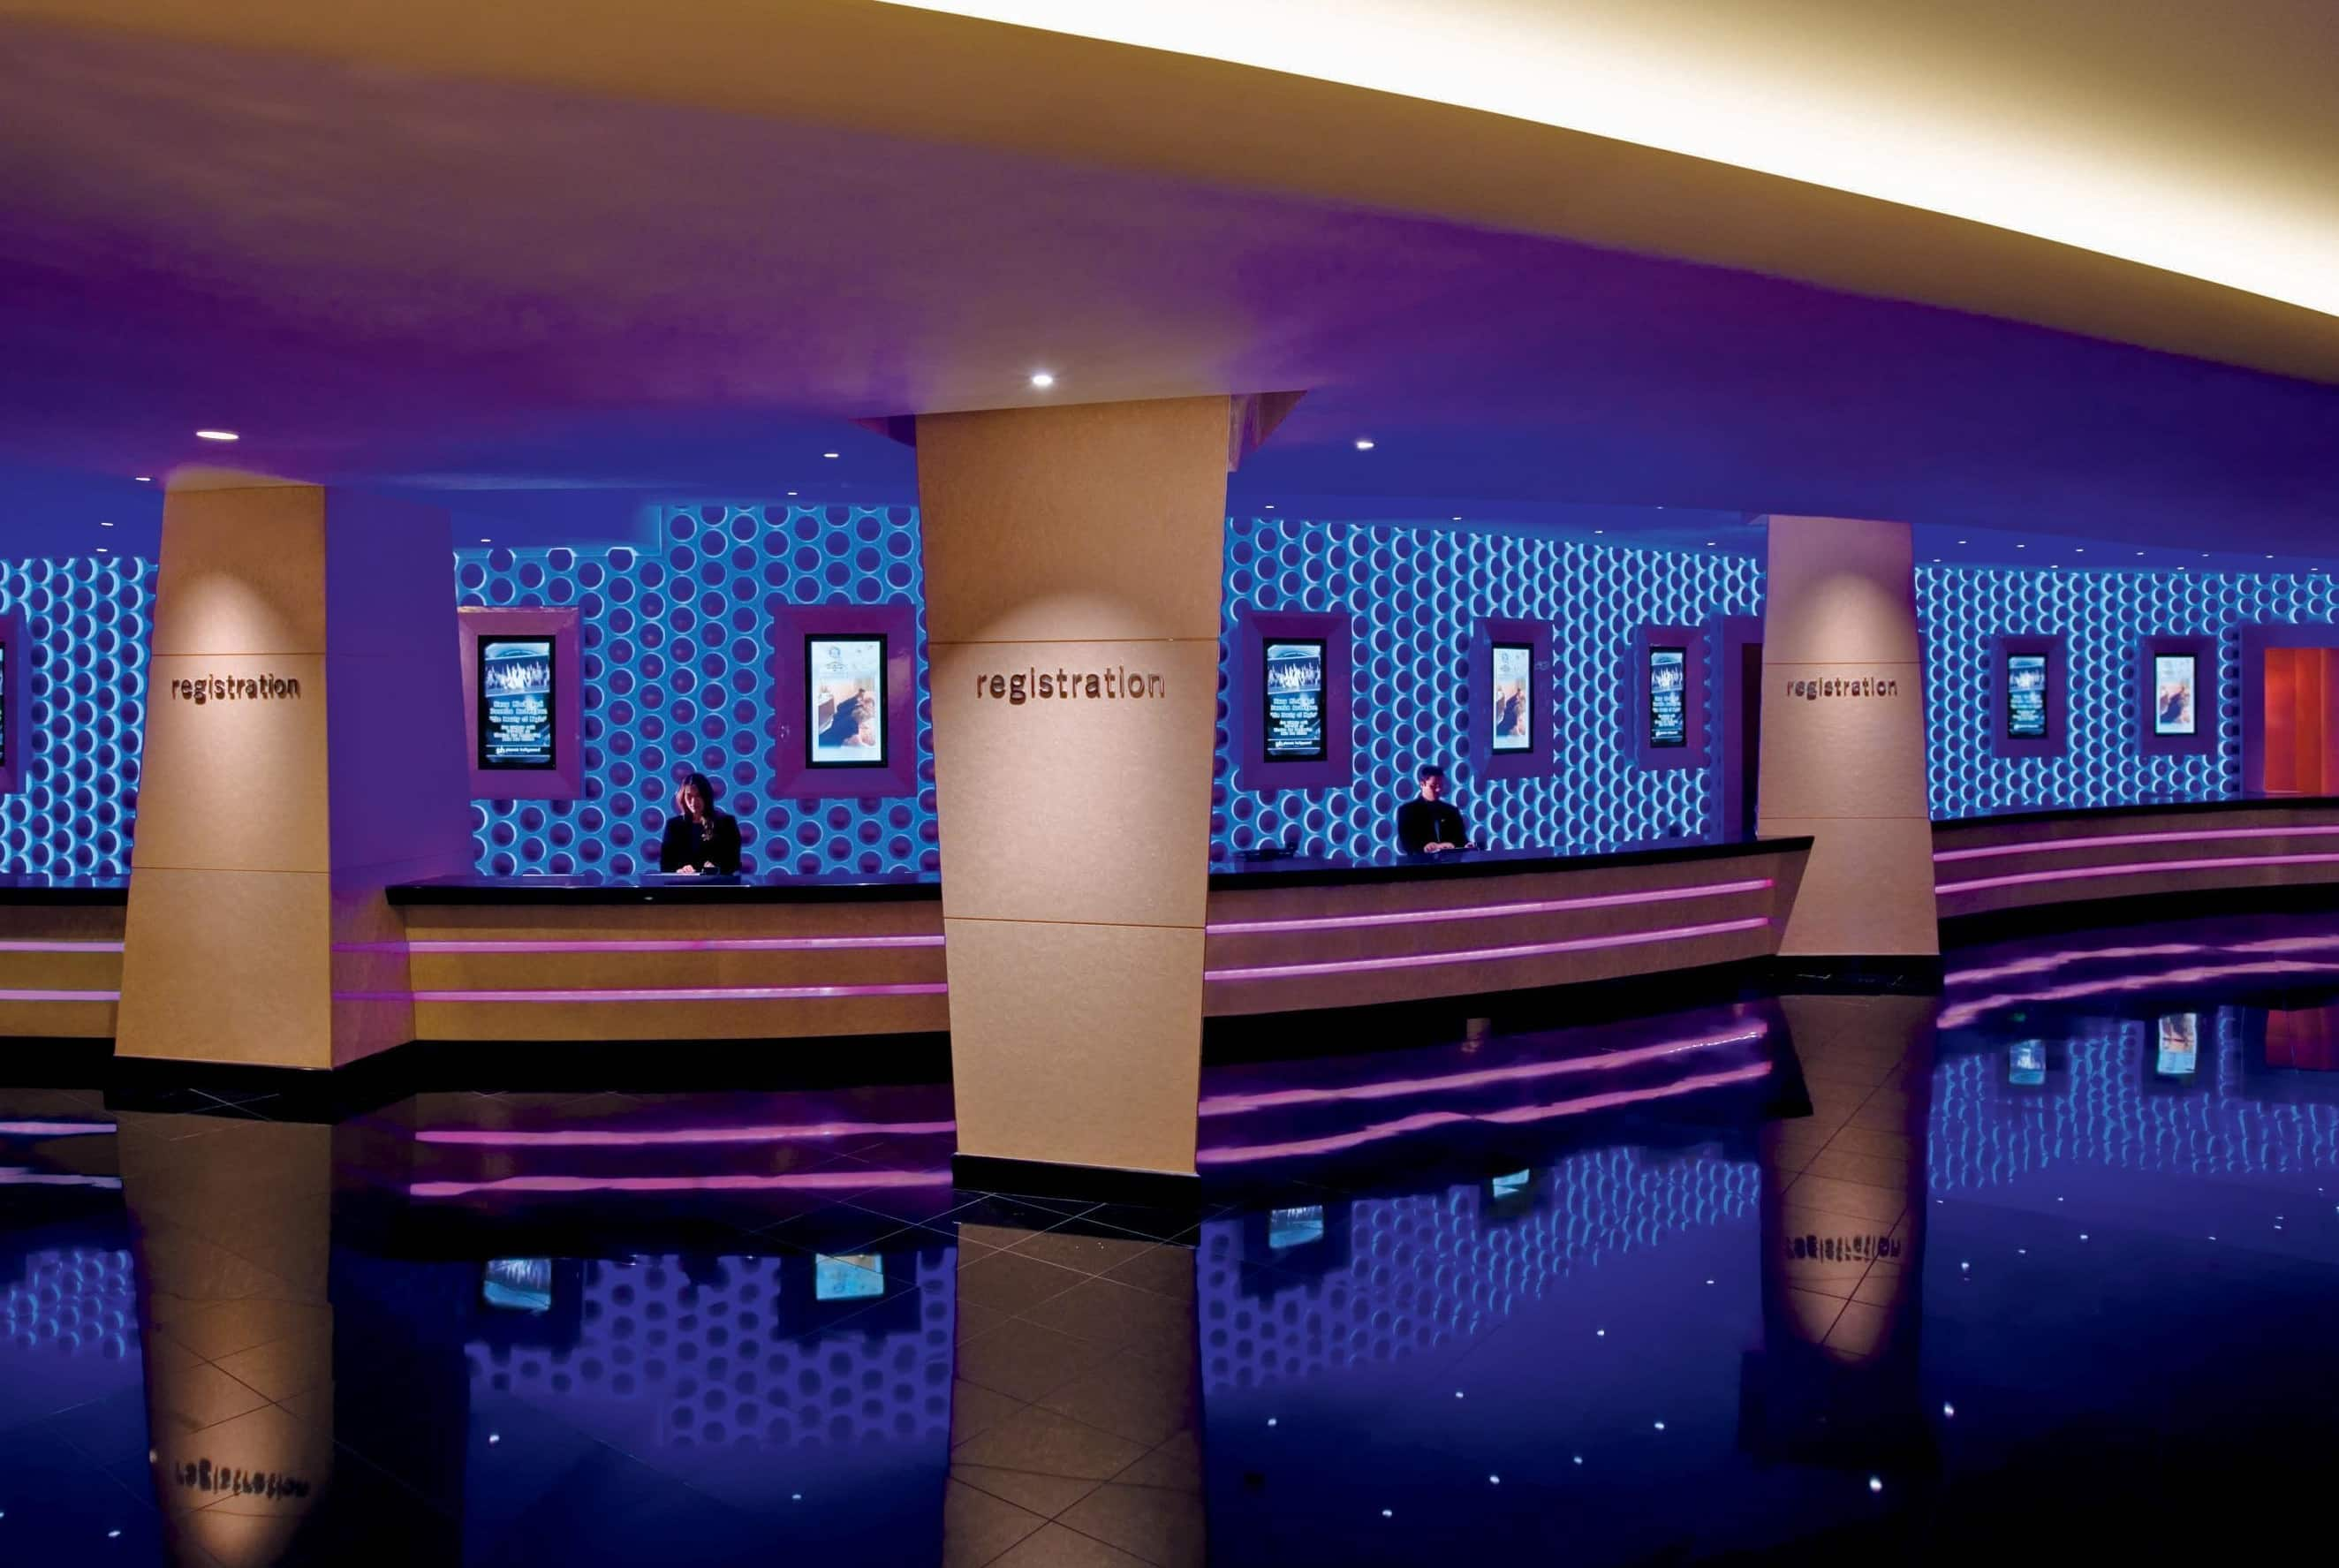 planet hollywood resort and casino photo gallery rh wyndhamhotels com planet hollywood front desk tip planet hollywood hotel front desk